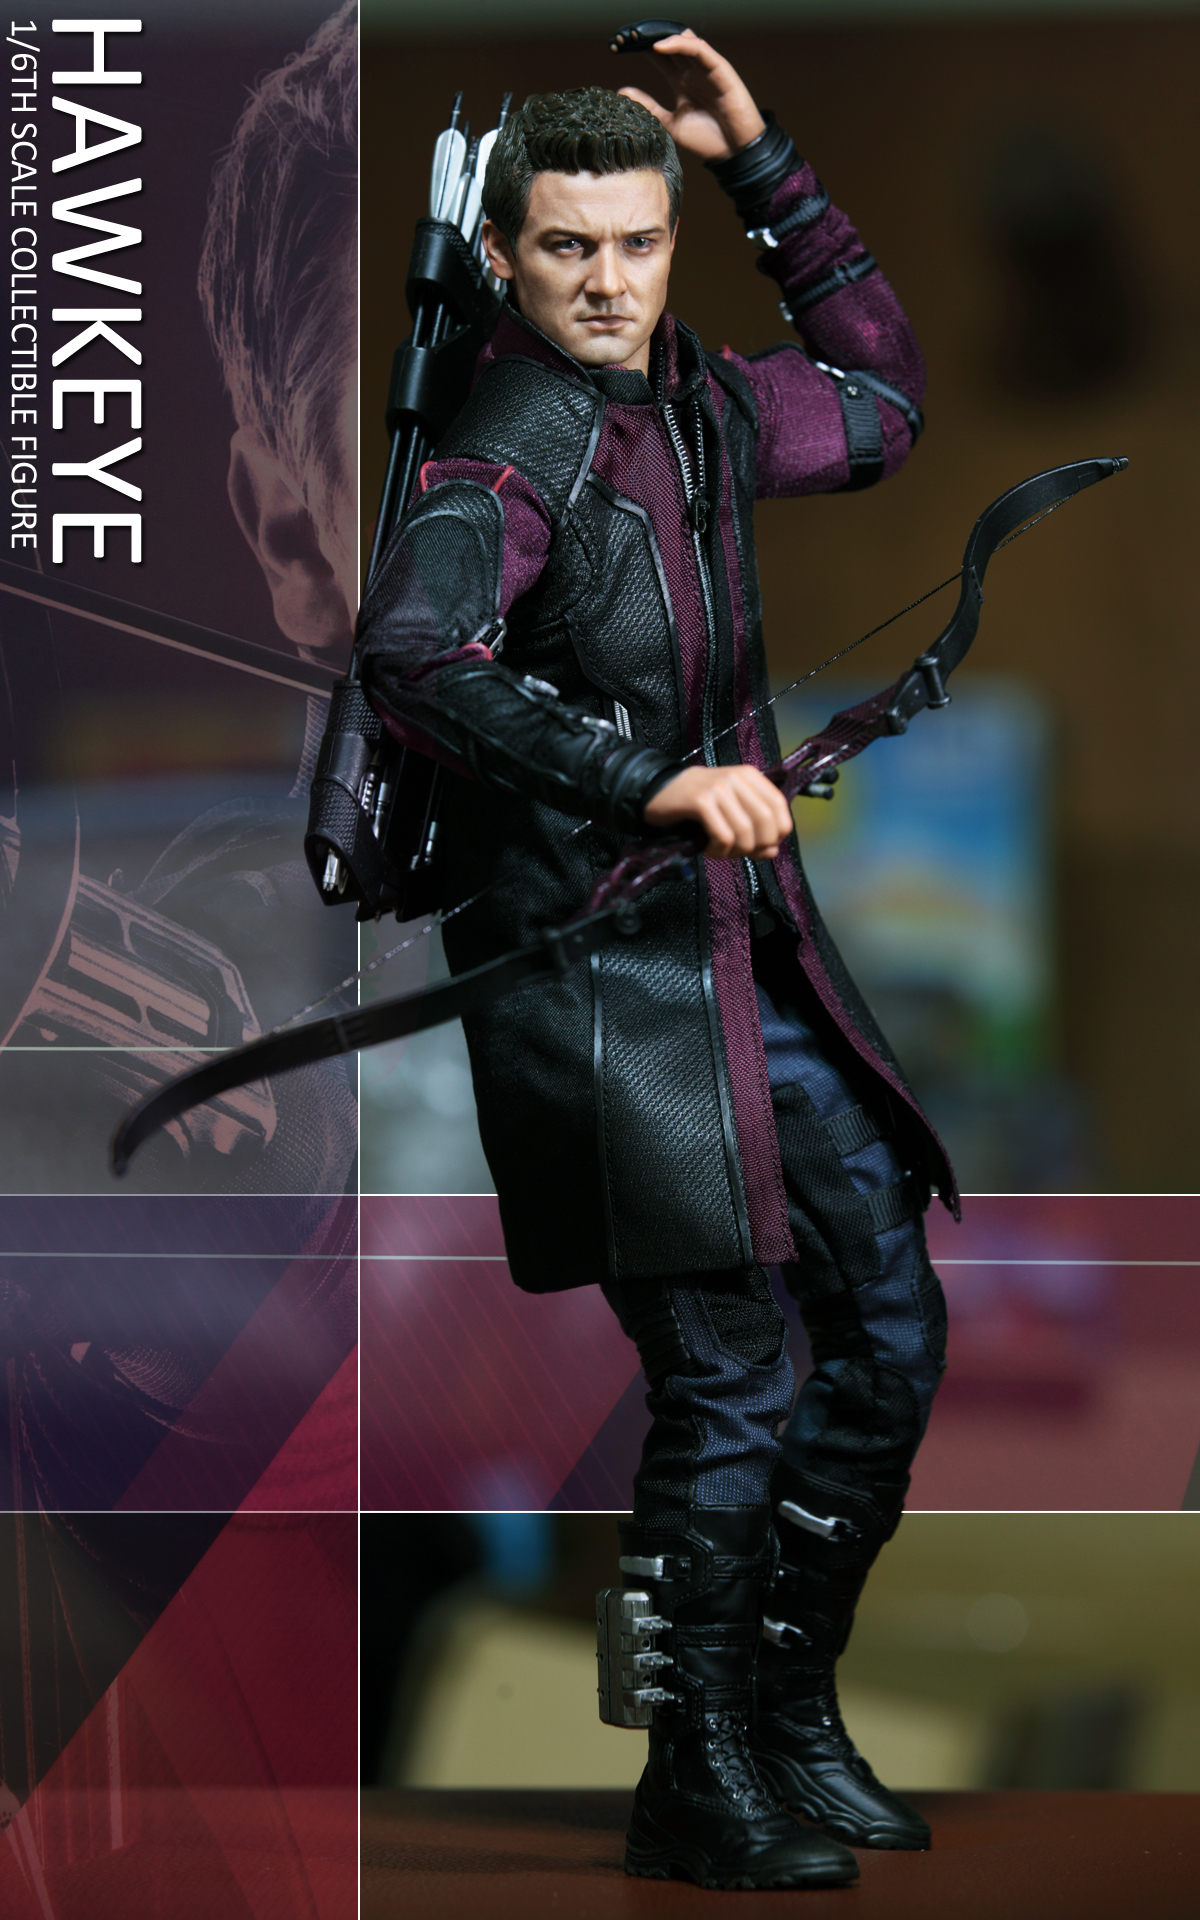 hottoys-avengers-age-of-ultron-hawkeye-picture03